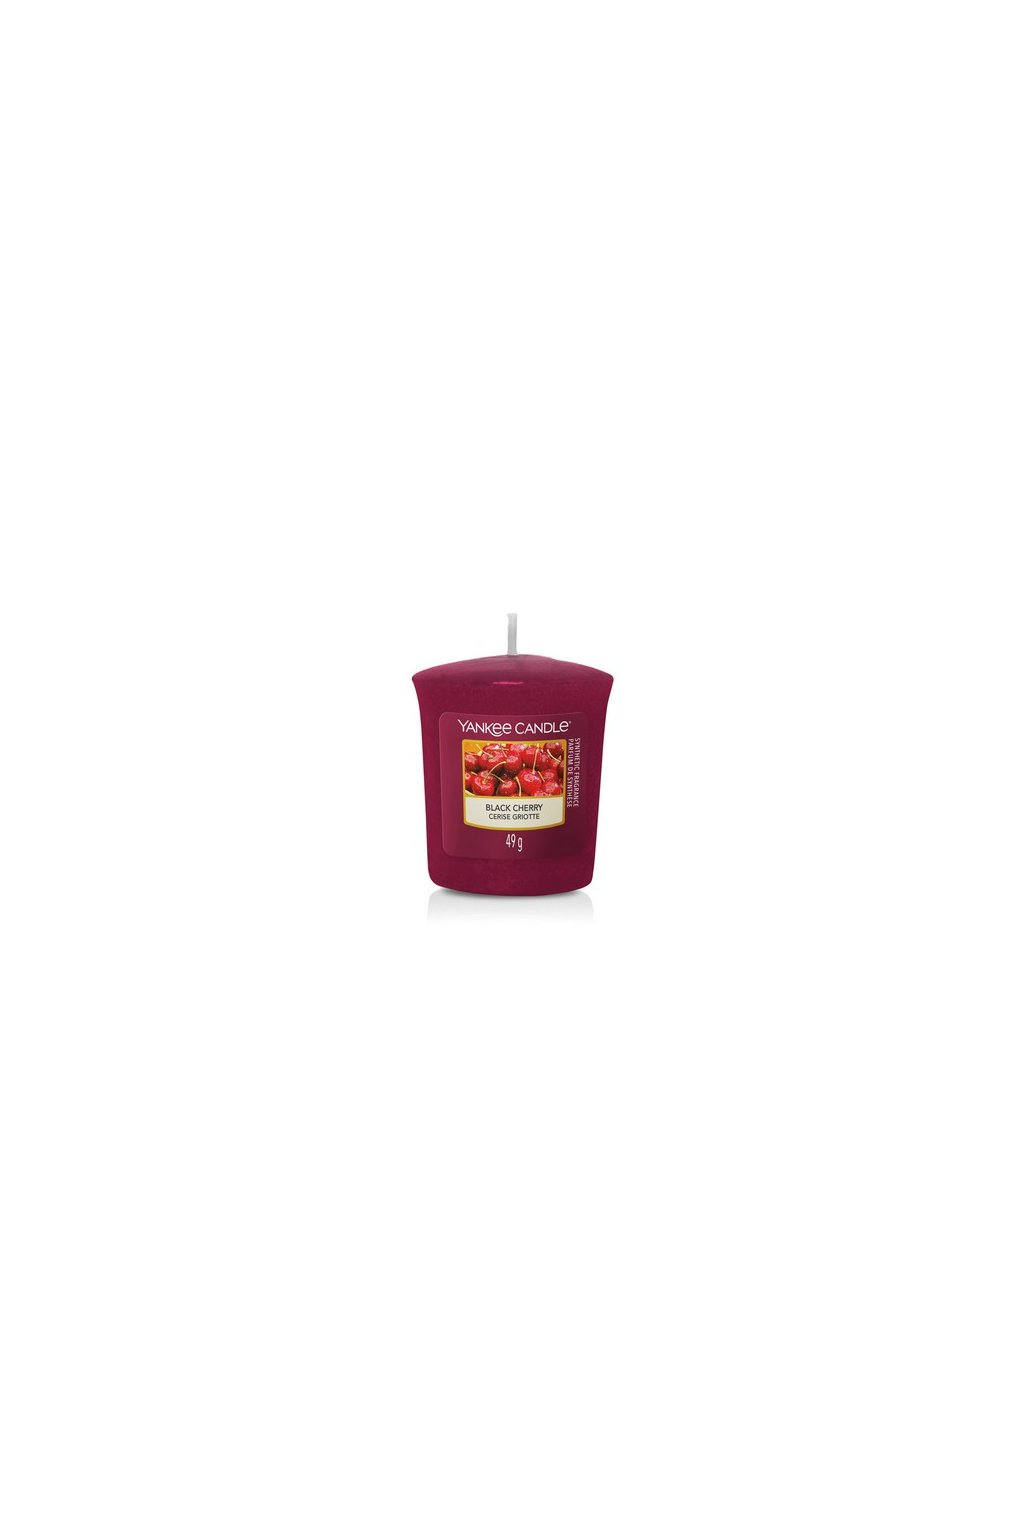 Yankee Candle Black Cherry 49g